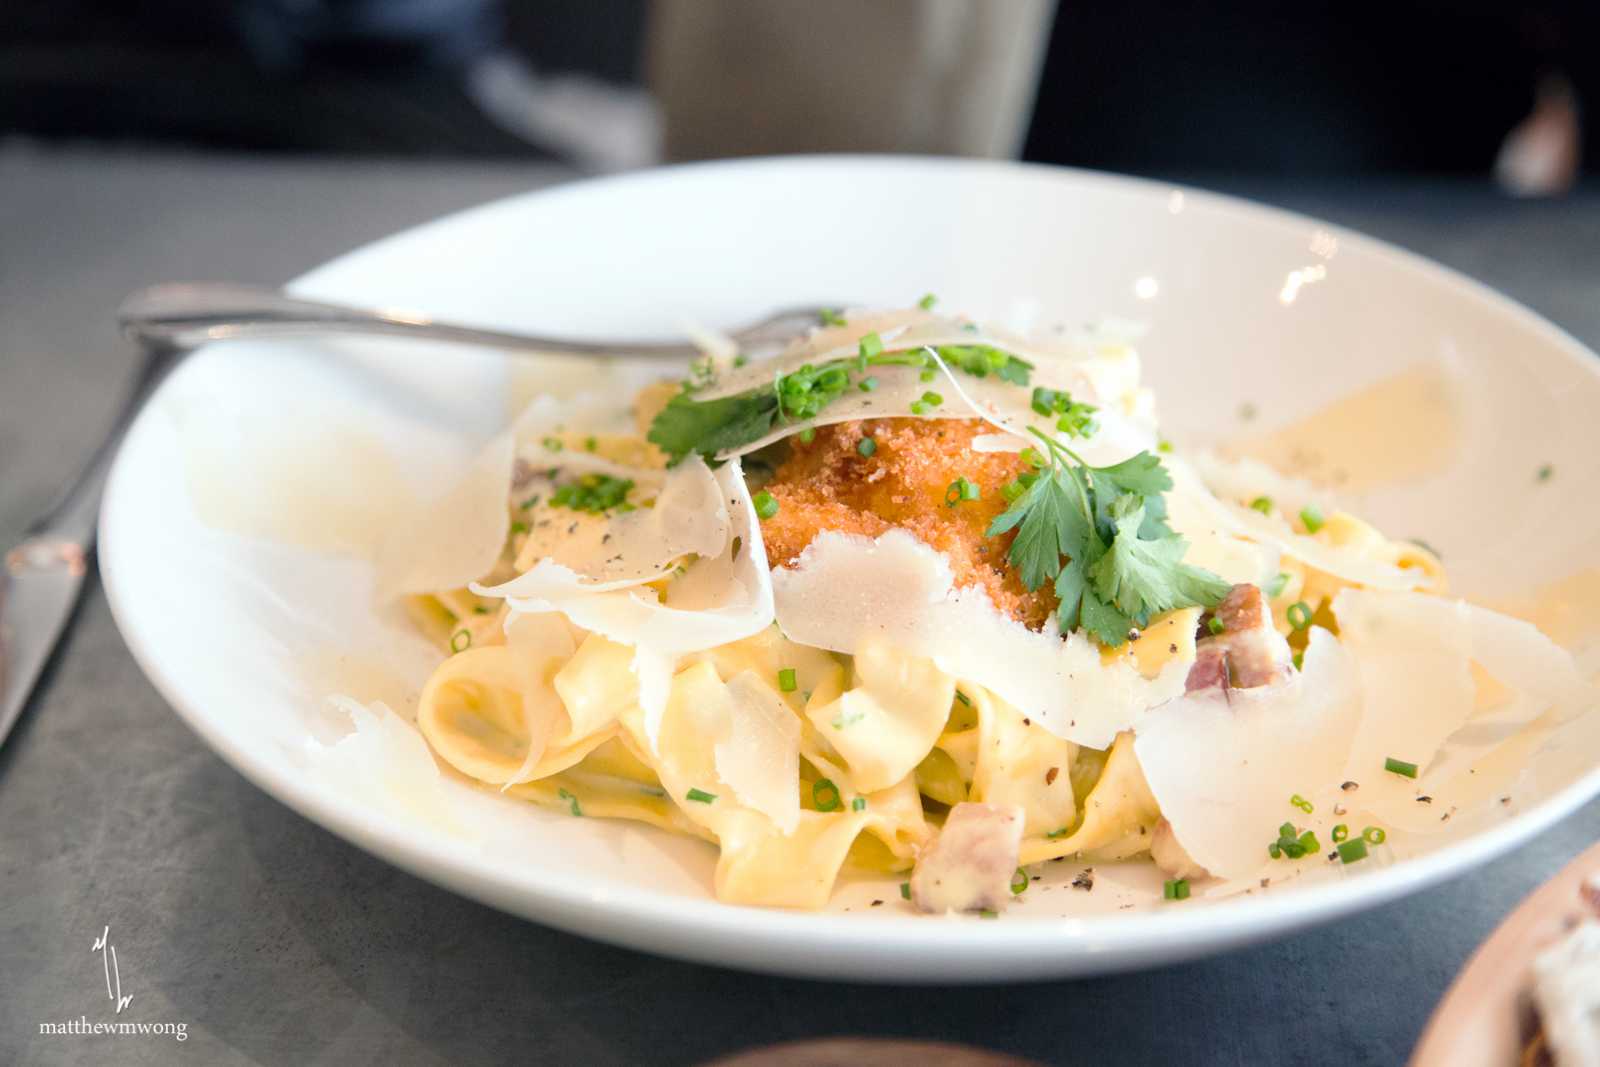 Tagliatelle - carbonara, bacon, crispy farm egg